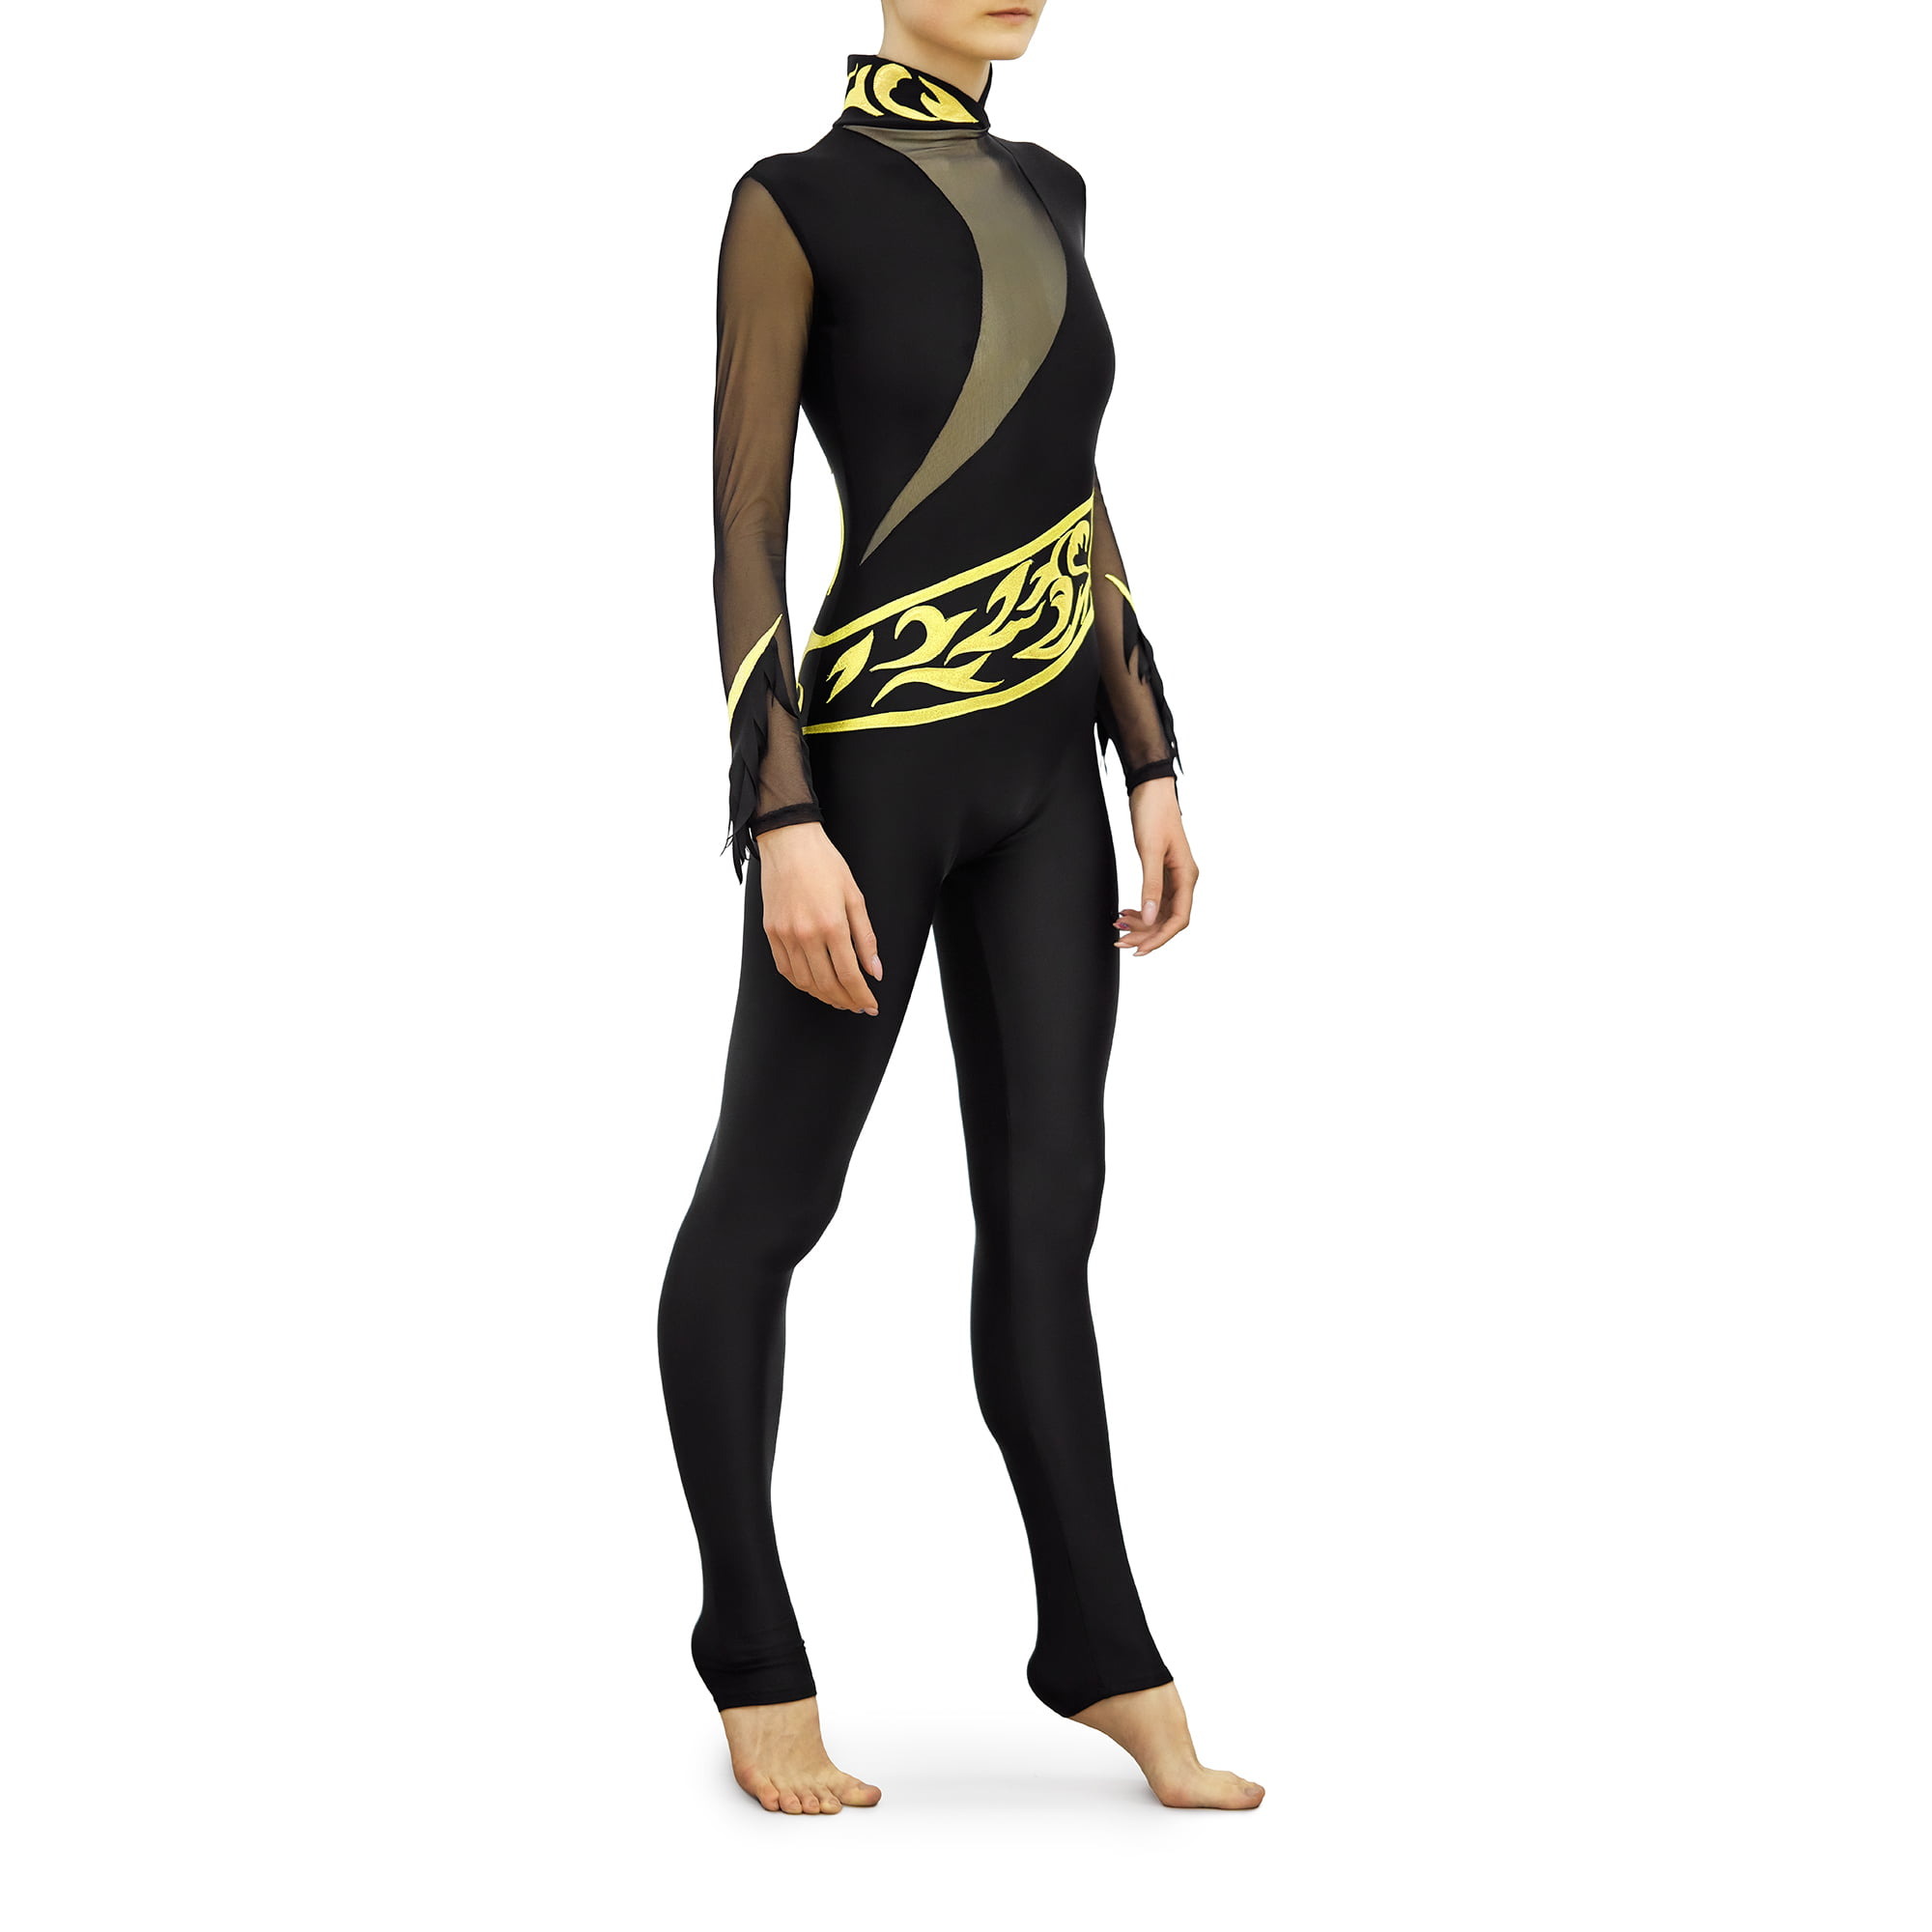 Black, gold, black mesh Rhythmic Gymnastics Jumpsuit 245 with collar and two sleeves